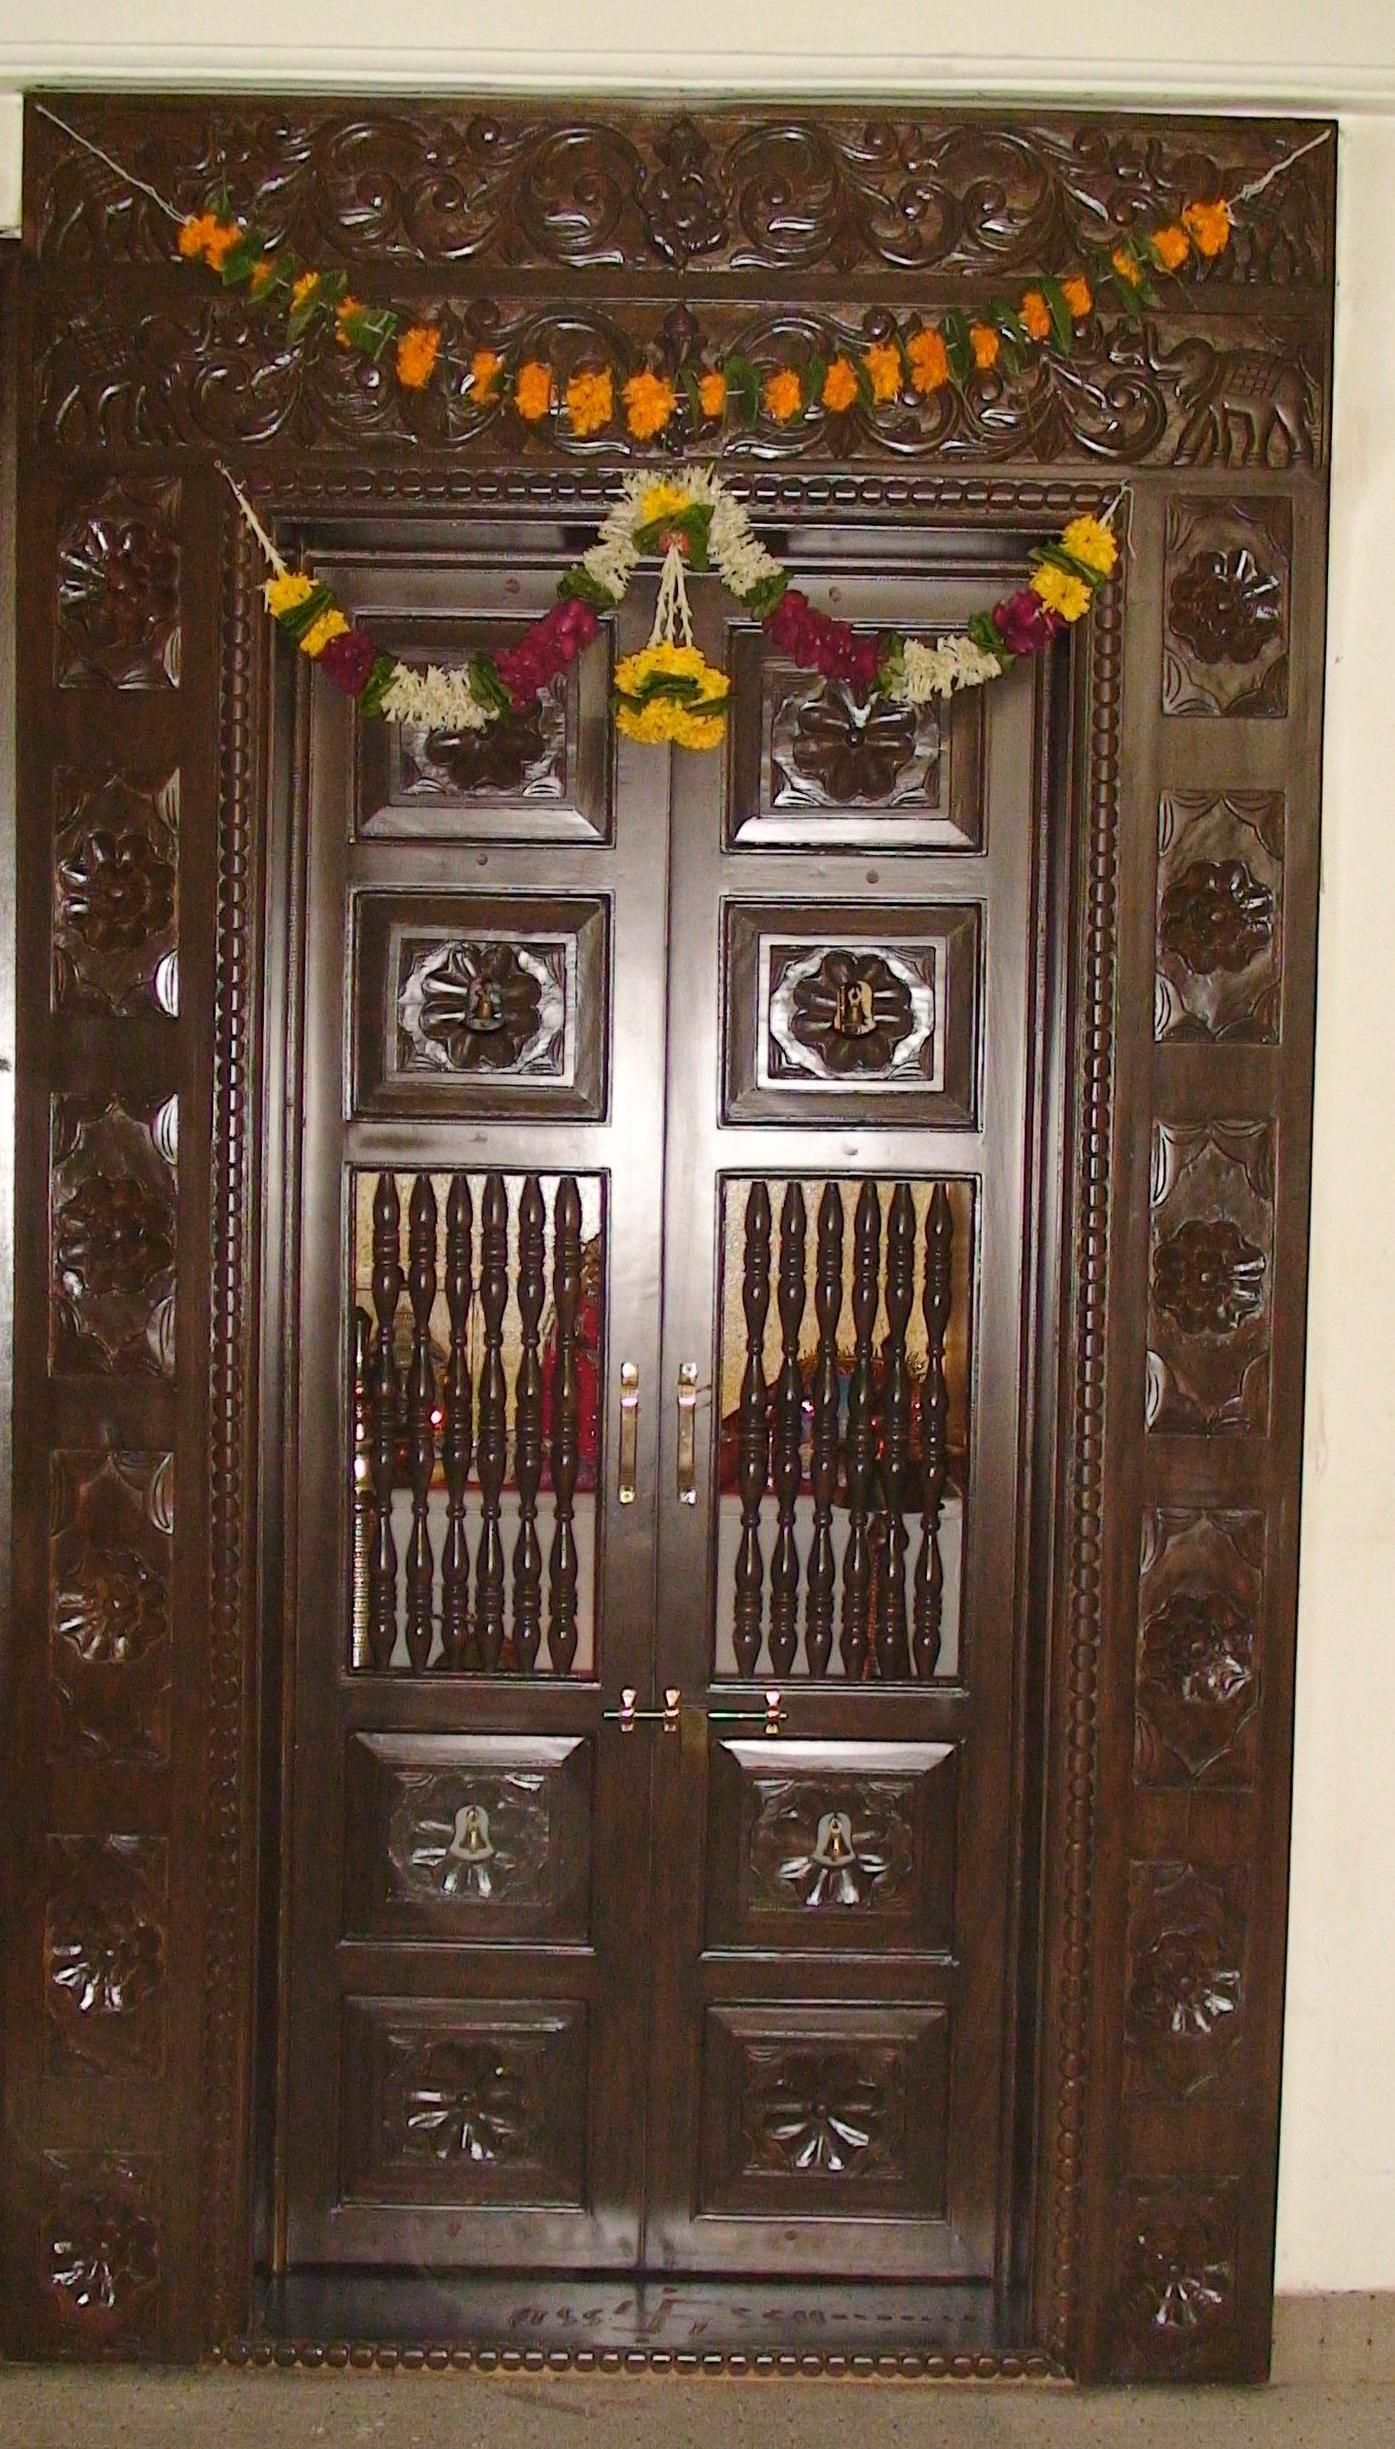 pictures of doors in hawaii | Pooja Door Designs Teak Wood ...